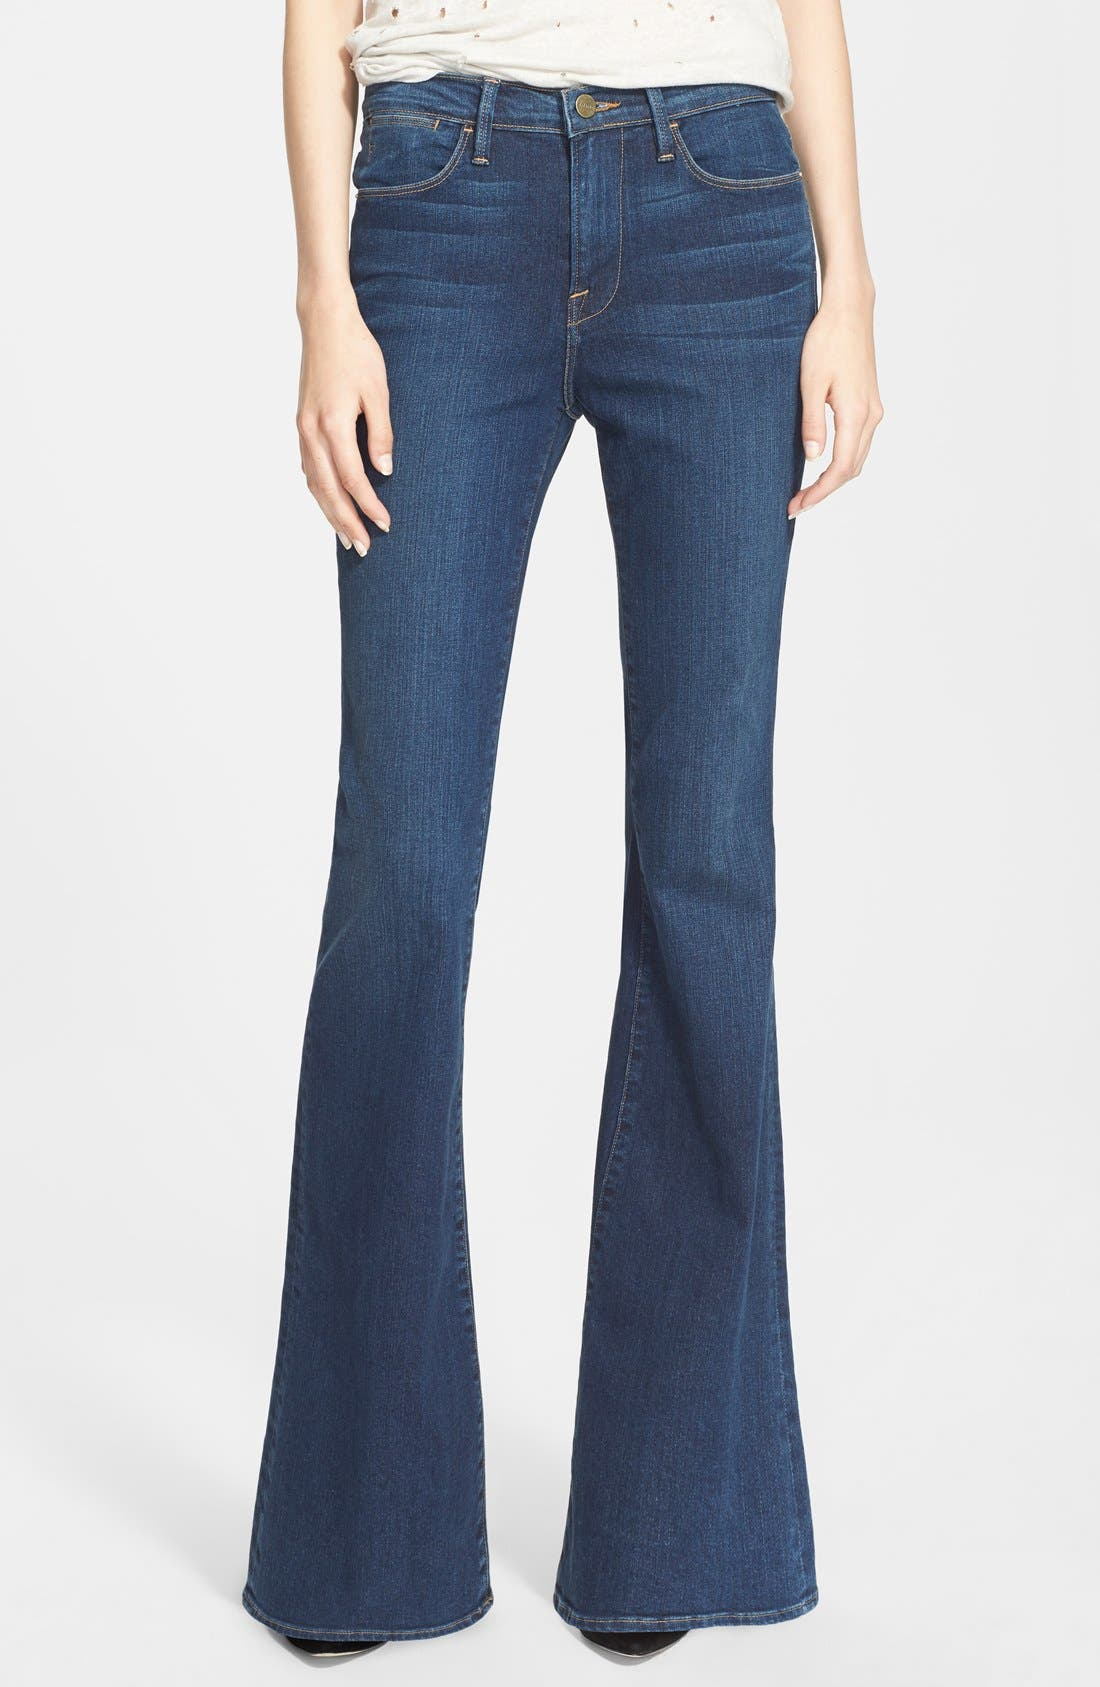 Denim 'Le High Flare' Flare Leg Jeans,                             Main thumbnail 1, color,                             Dunfield